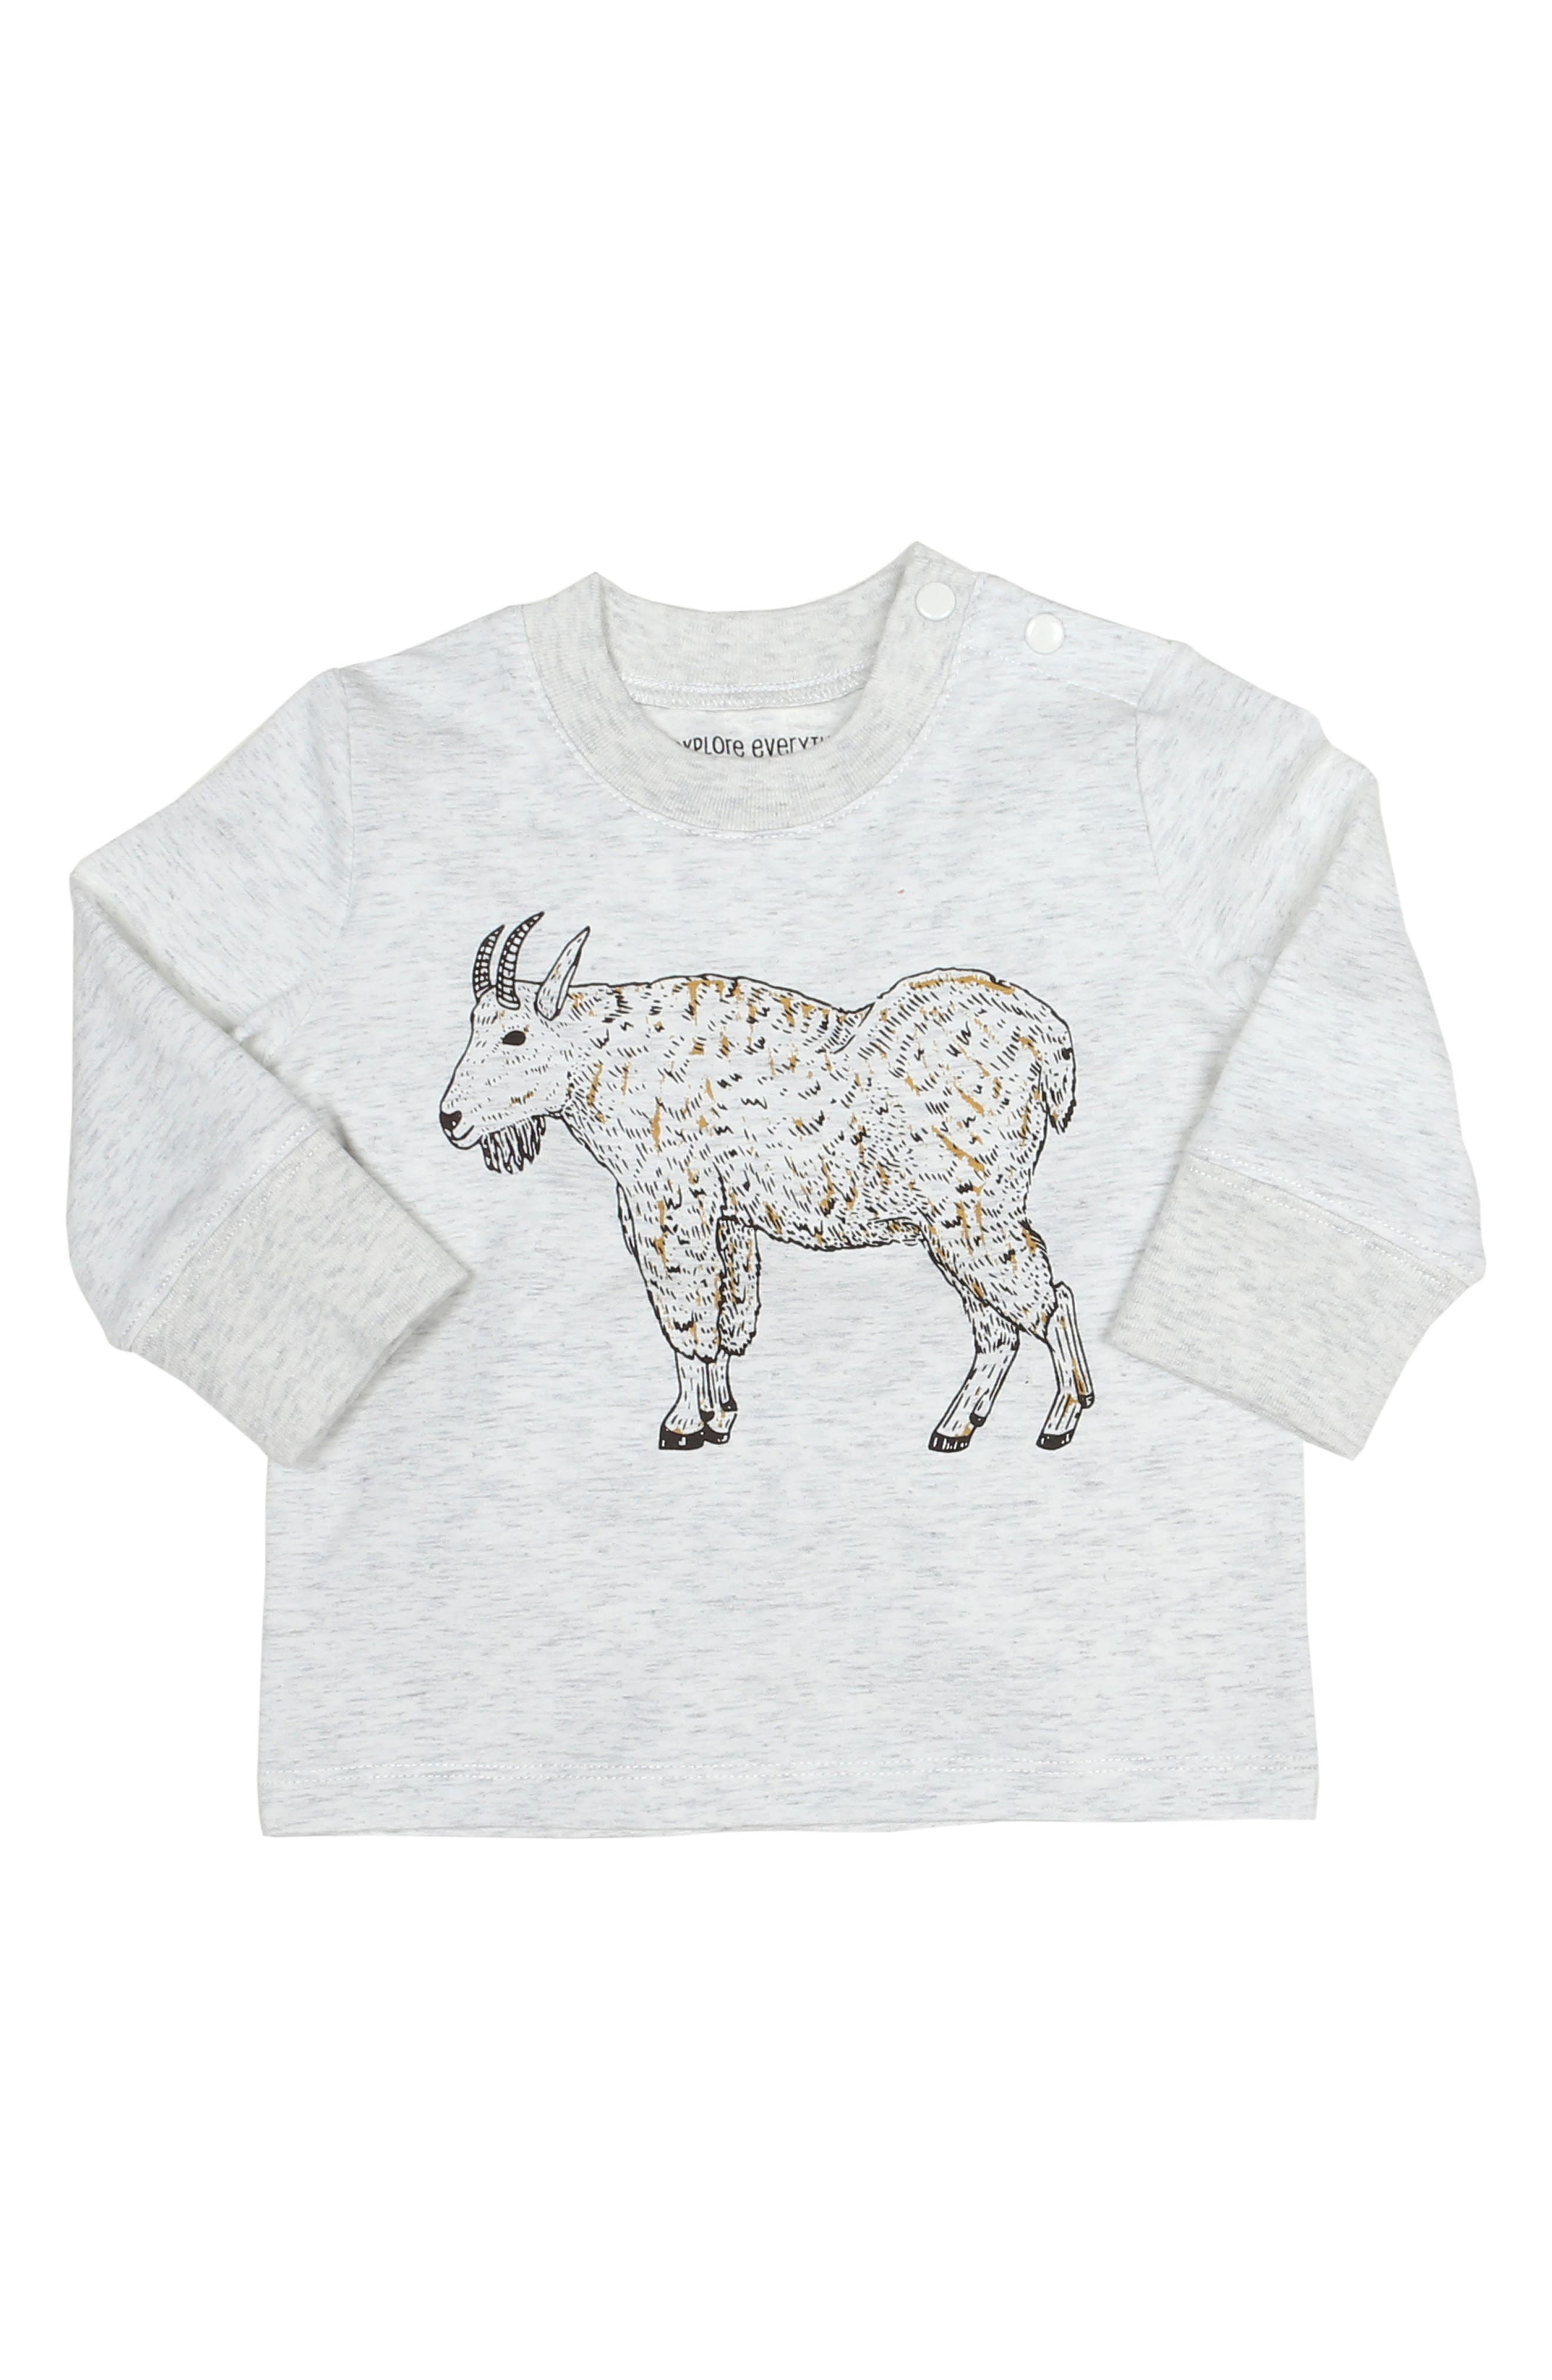 ROBEEZ<SUP>®</SUP>, Billy Goat Graphic T-Shirt, Main thumbnail 1, color, HEATHER GREY